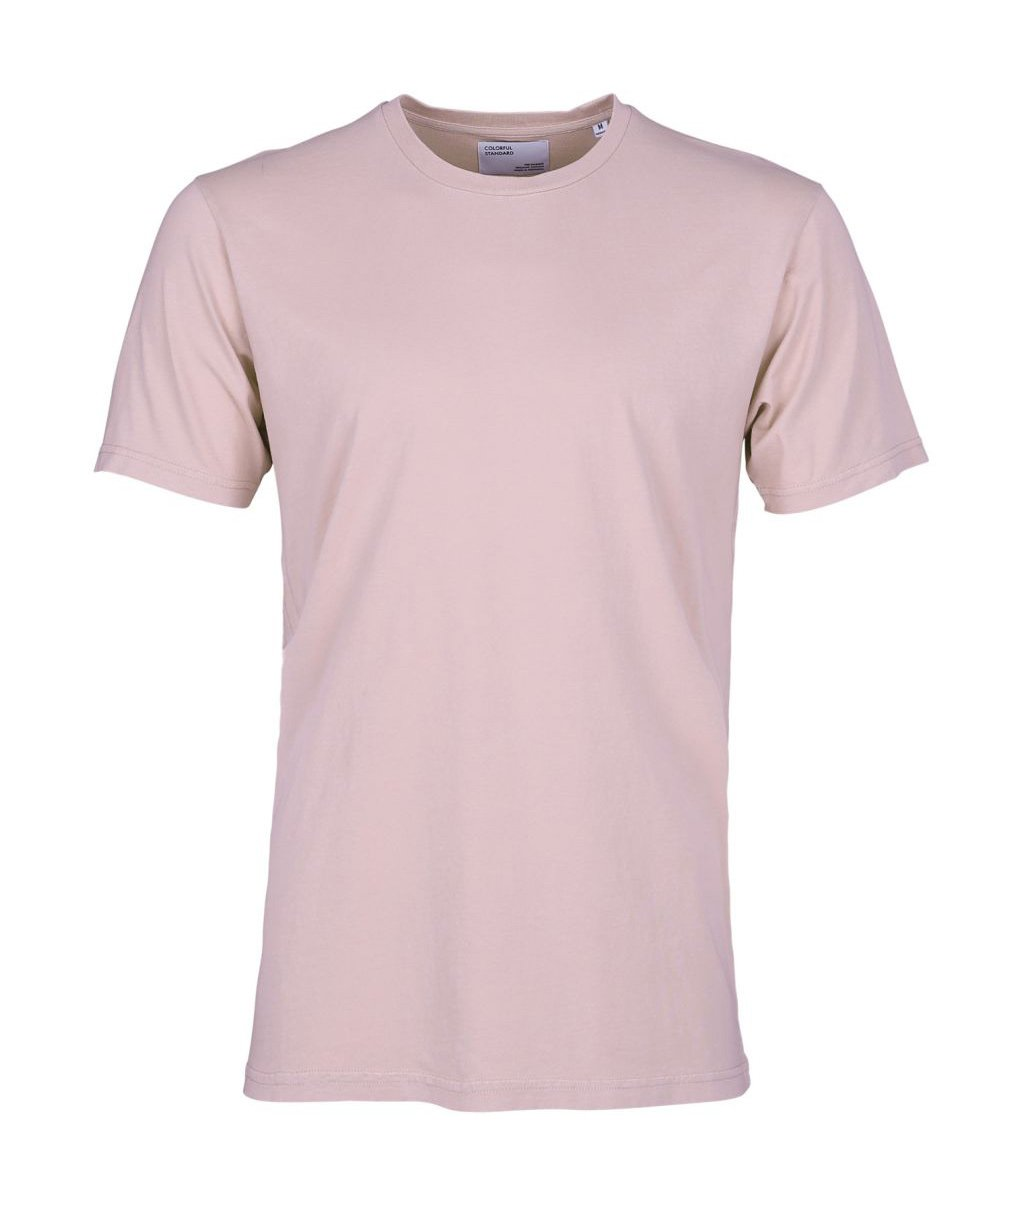 Colorful Standard COLORFUL STANDARD classic organic cotton tee shirt round neck faded pink (unisex)